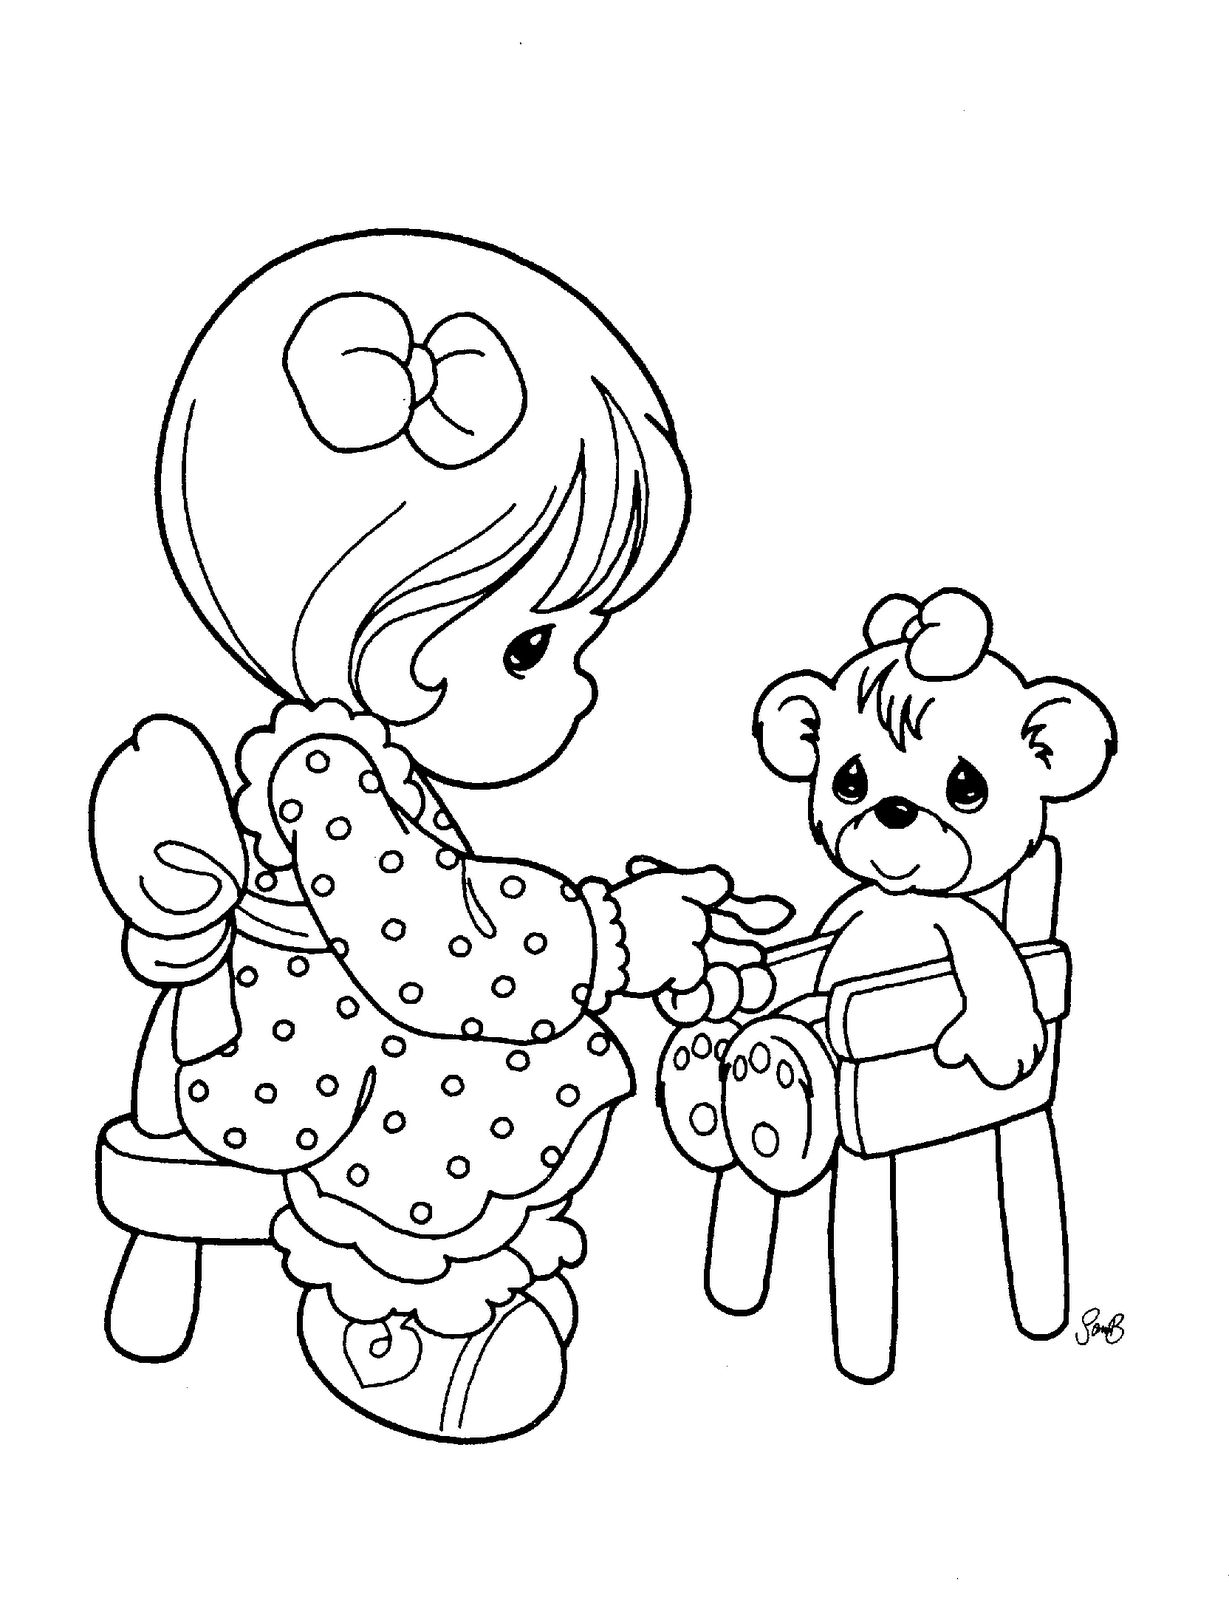 precious moments coloring books tell me your secret precious moments coloring page kids books coloring precious moments